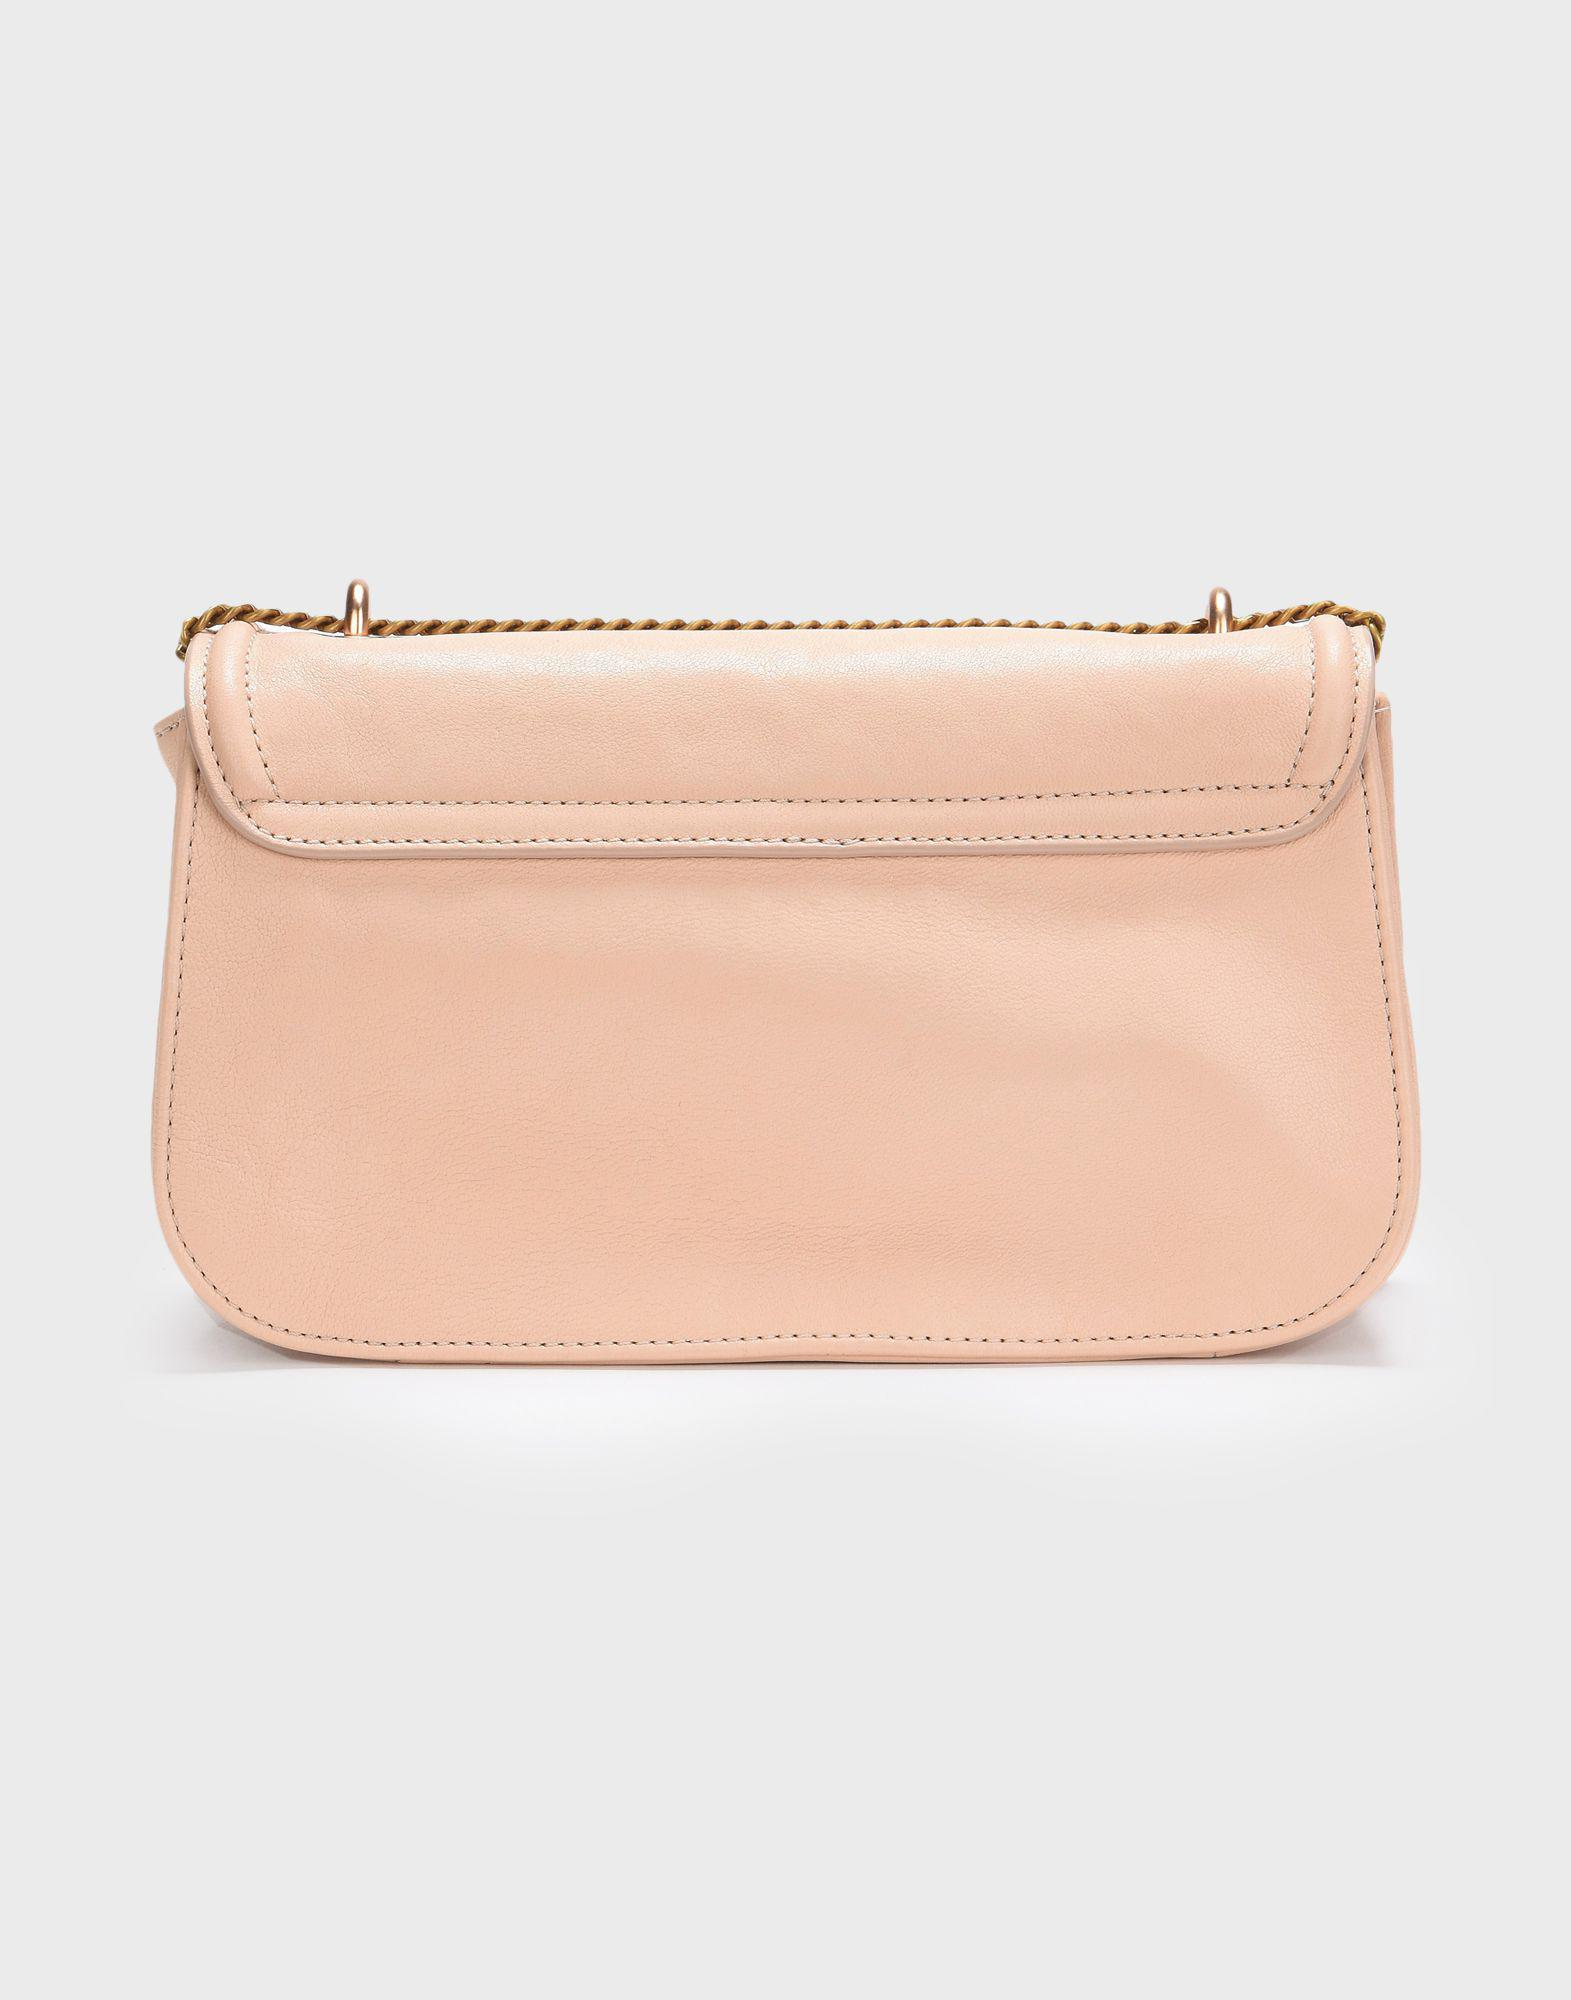 See By Chloé Leather Cross-body Bag in Natural